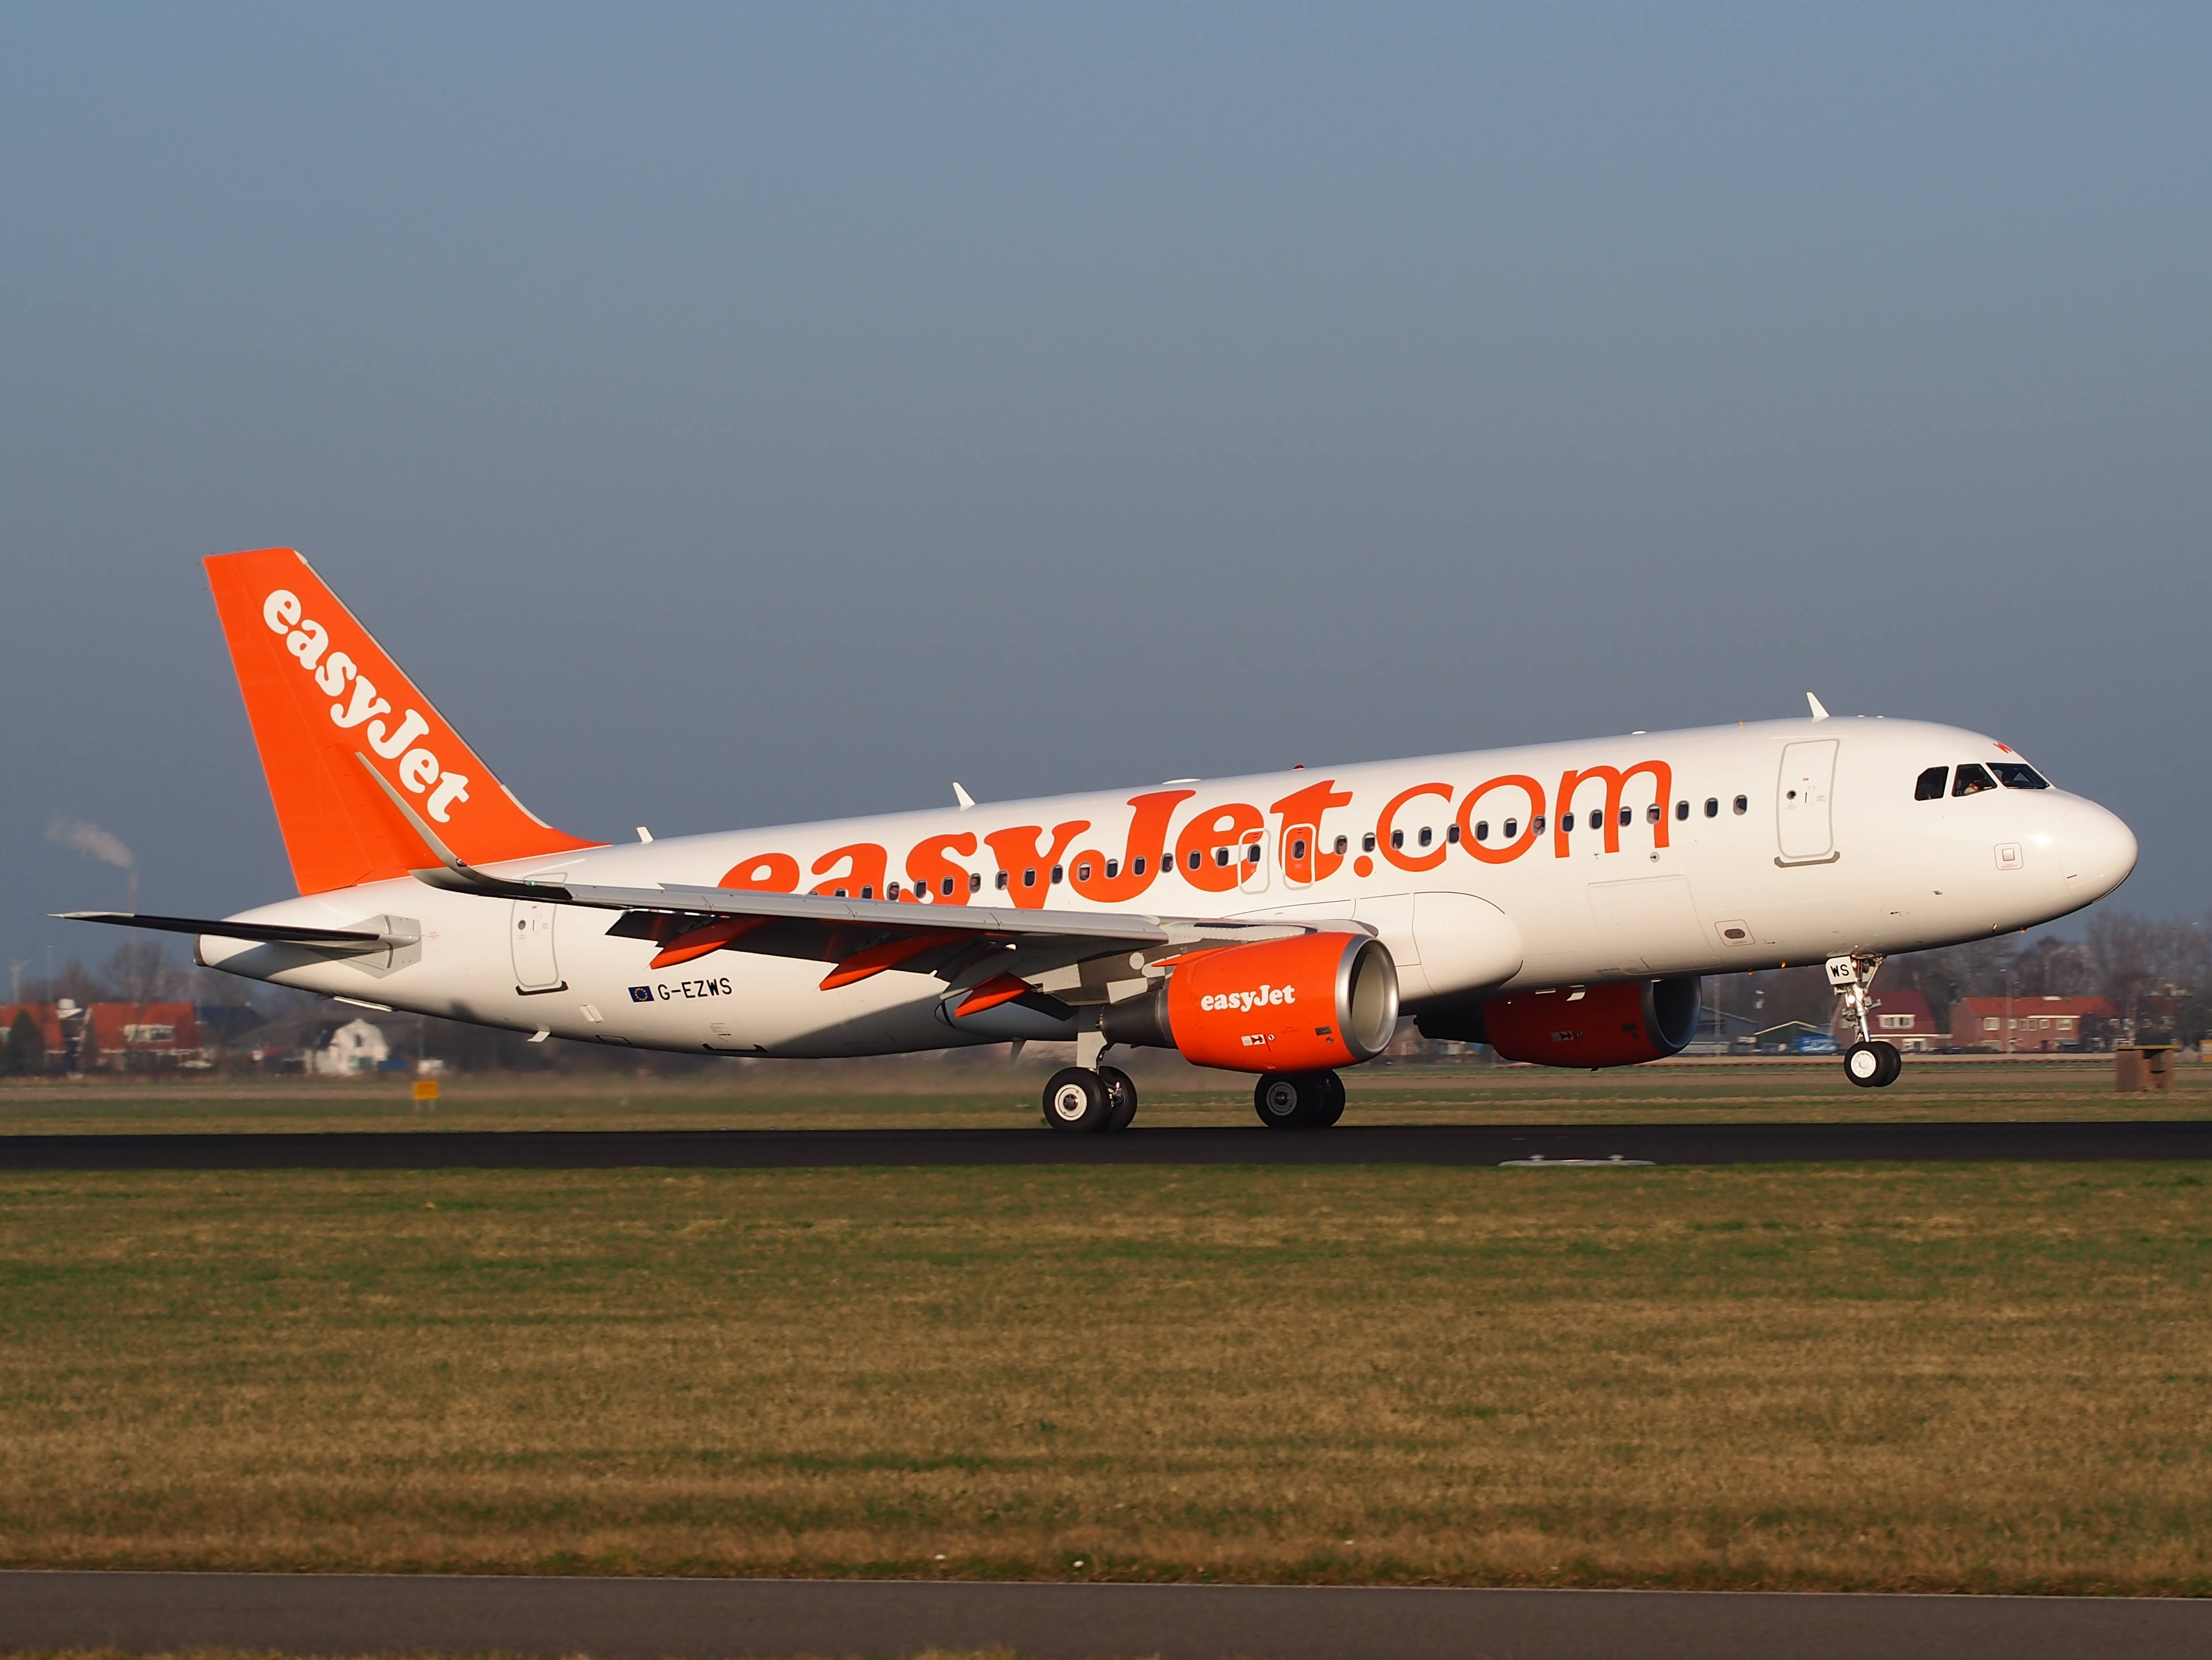 G-EZWS_easyJet_Airbus_A320-214(WL),_landing_at_Schiphol_(AMS_-_EHAM),_Netherlands,_pic3